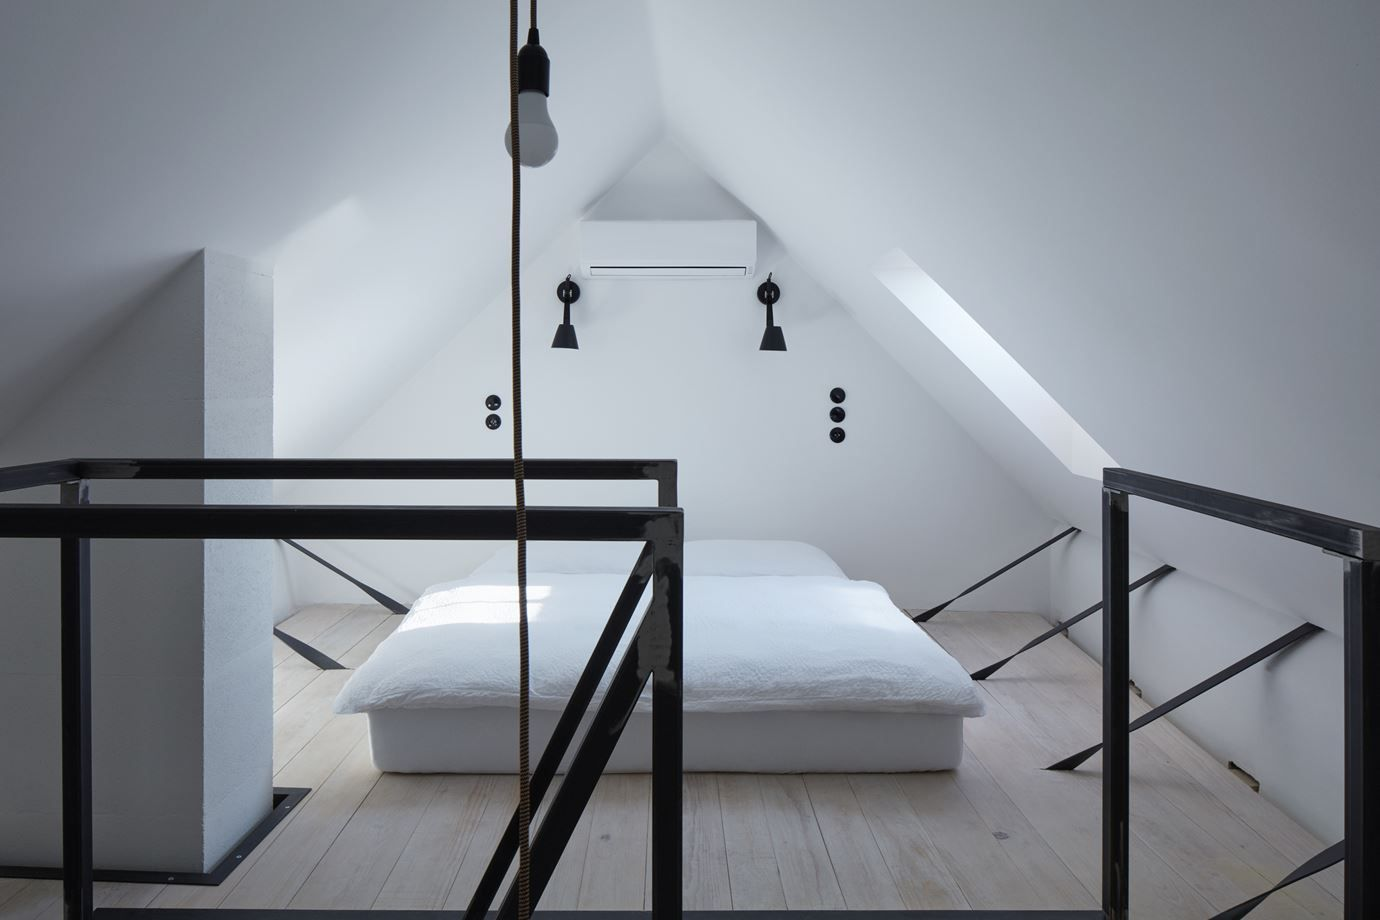 1560234223 822 try a minimalist bedroom design for less stress and a good nights sleep - Try a Minimalist Bedroom Design for Less Stress and a Good Night's Sleep